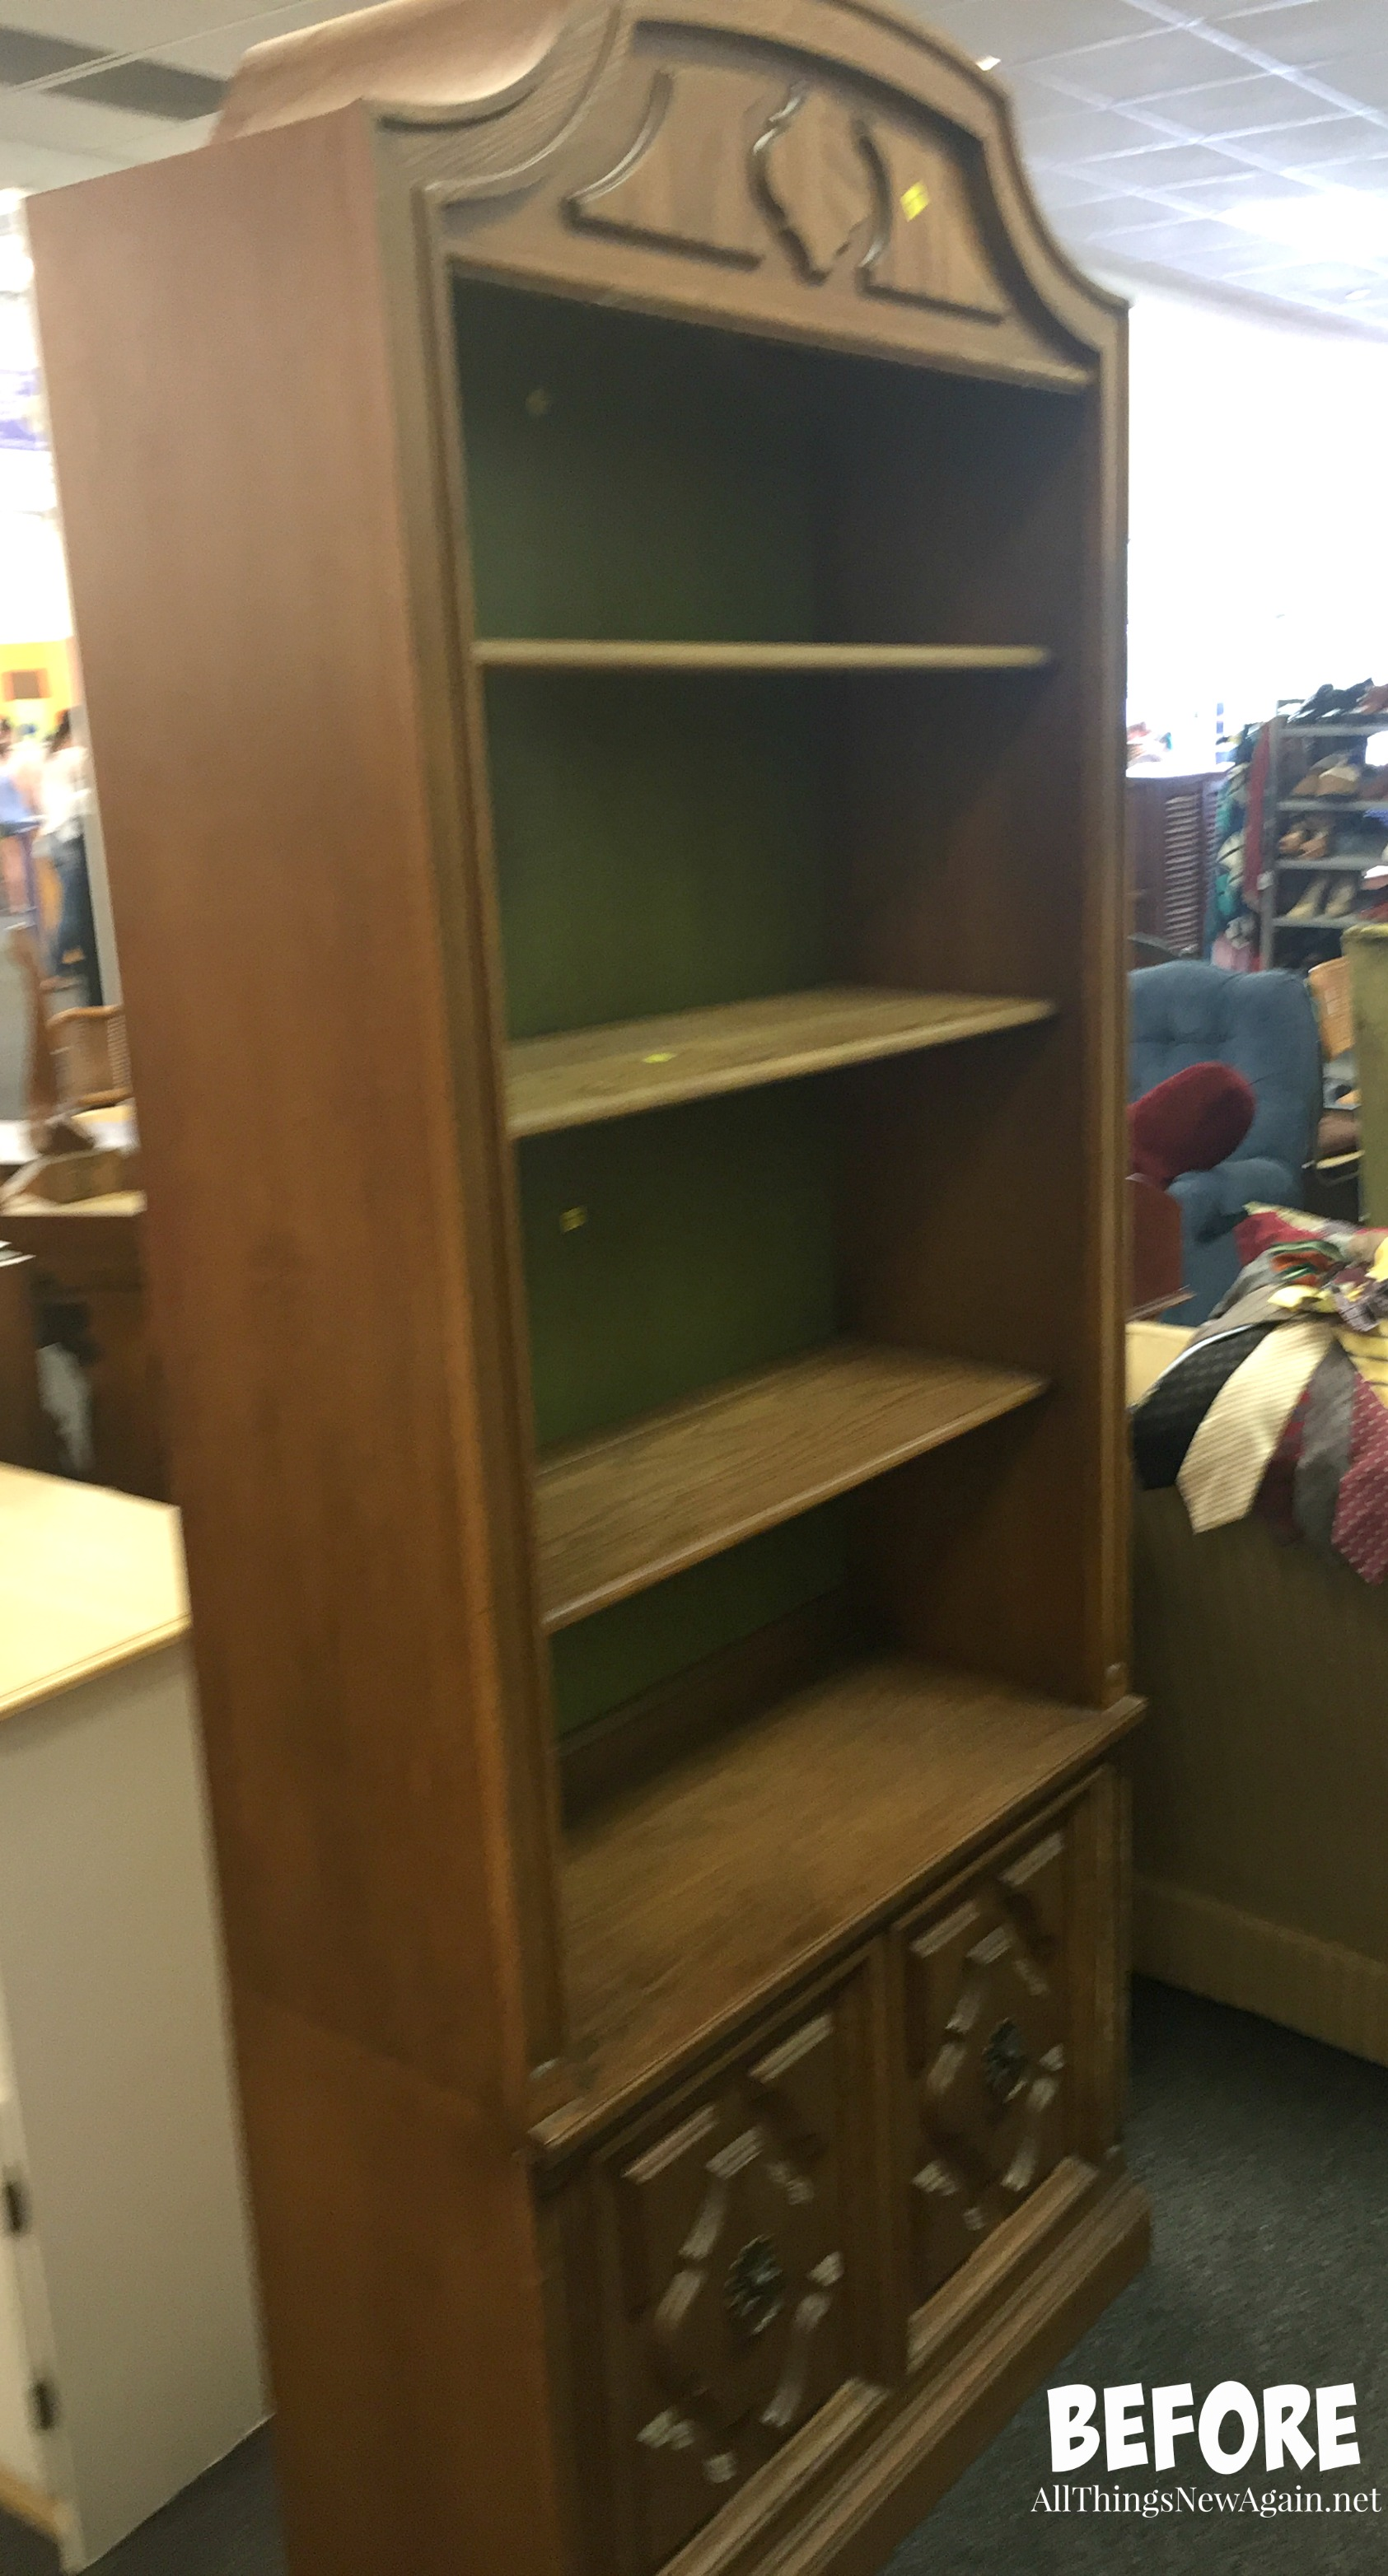 Wonderful If You Found This Outdated China Cabinet, Would You Buy It?